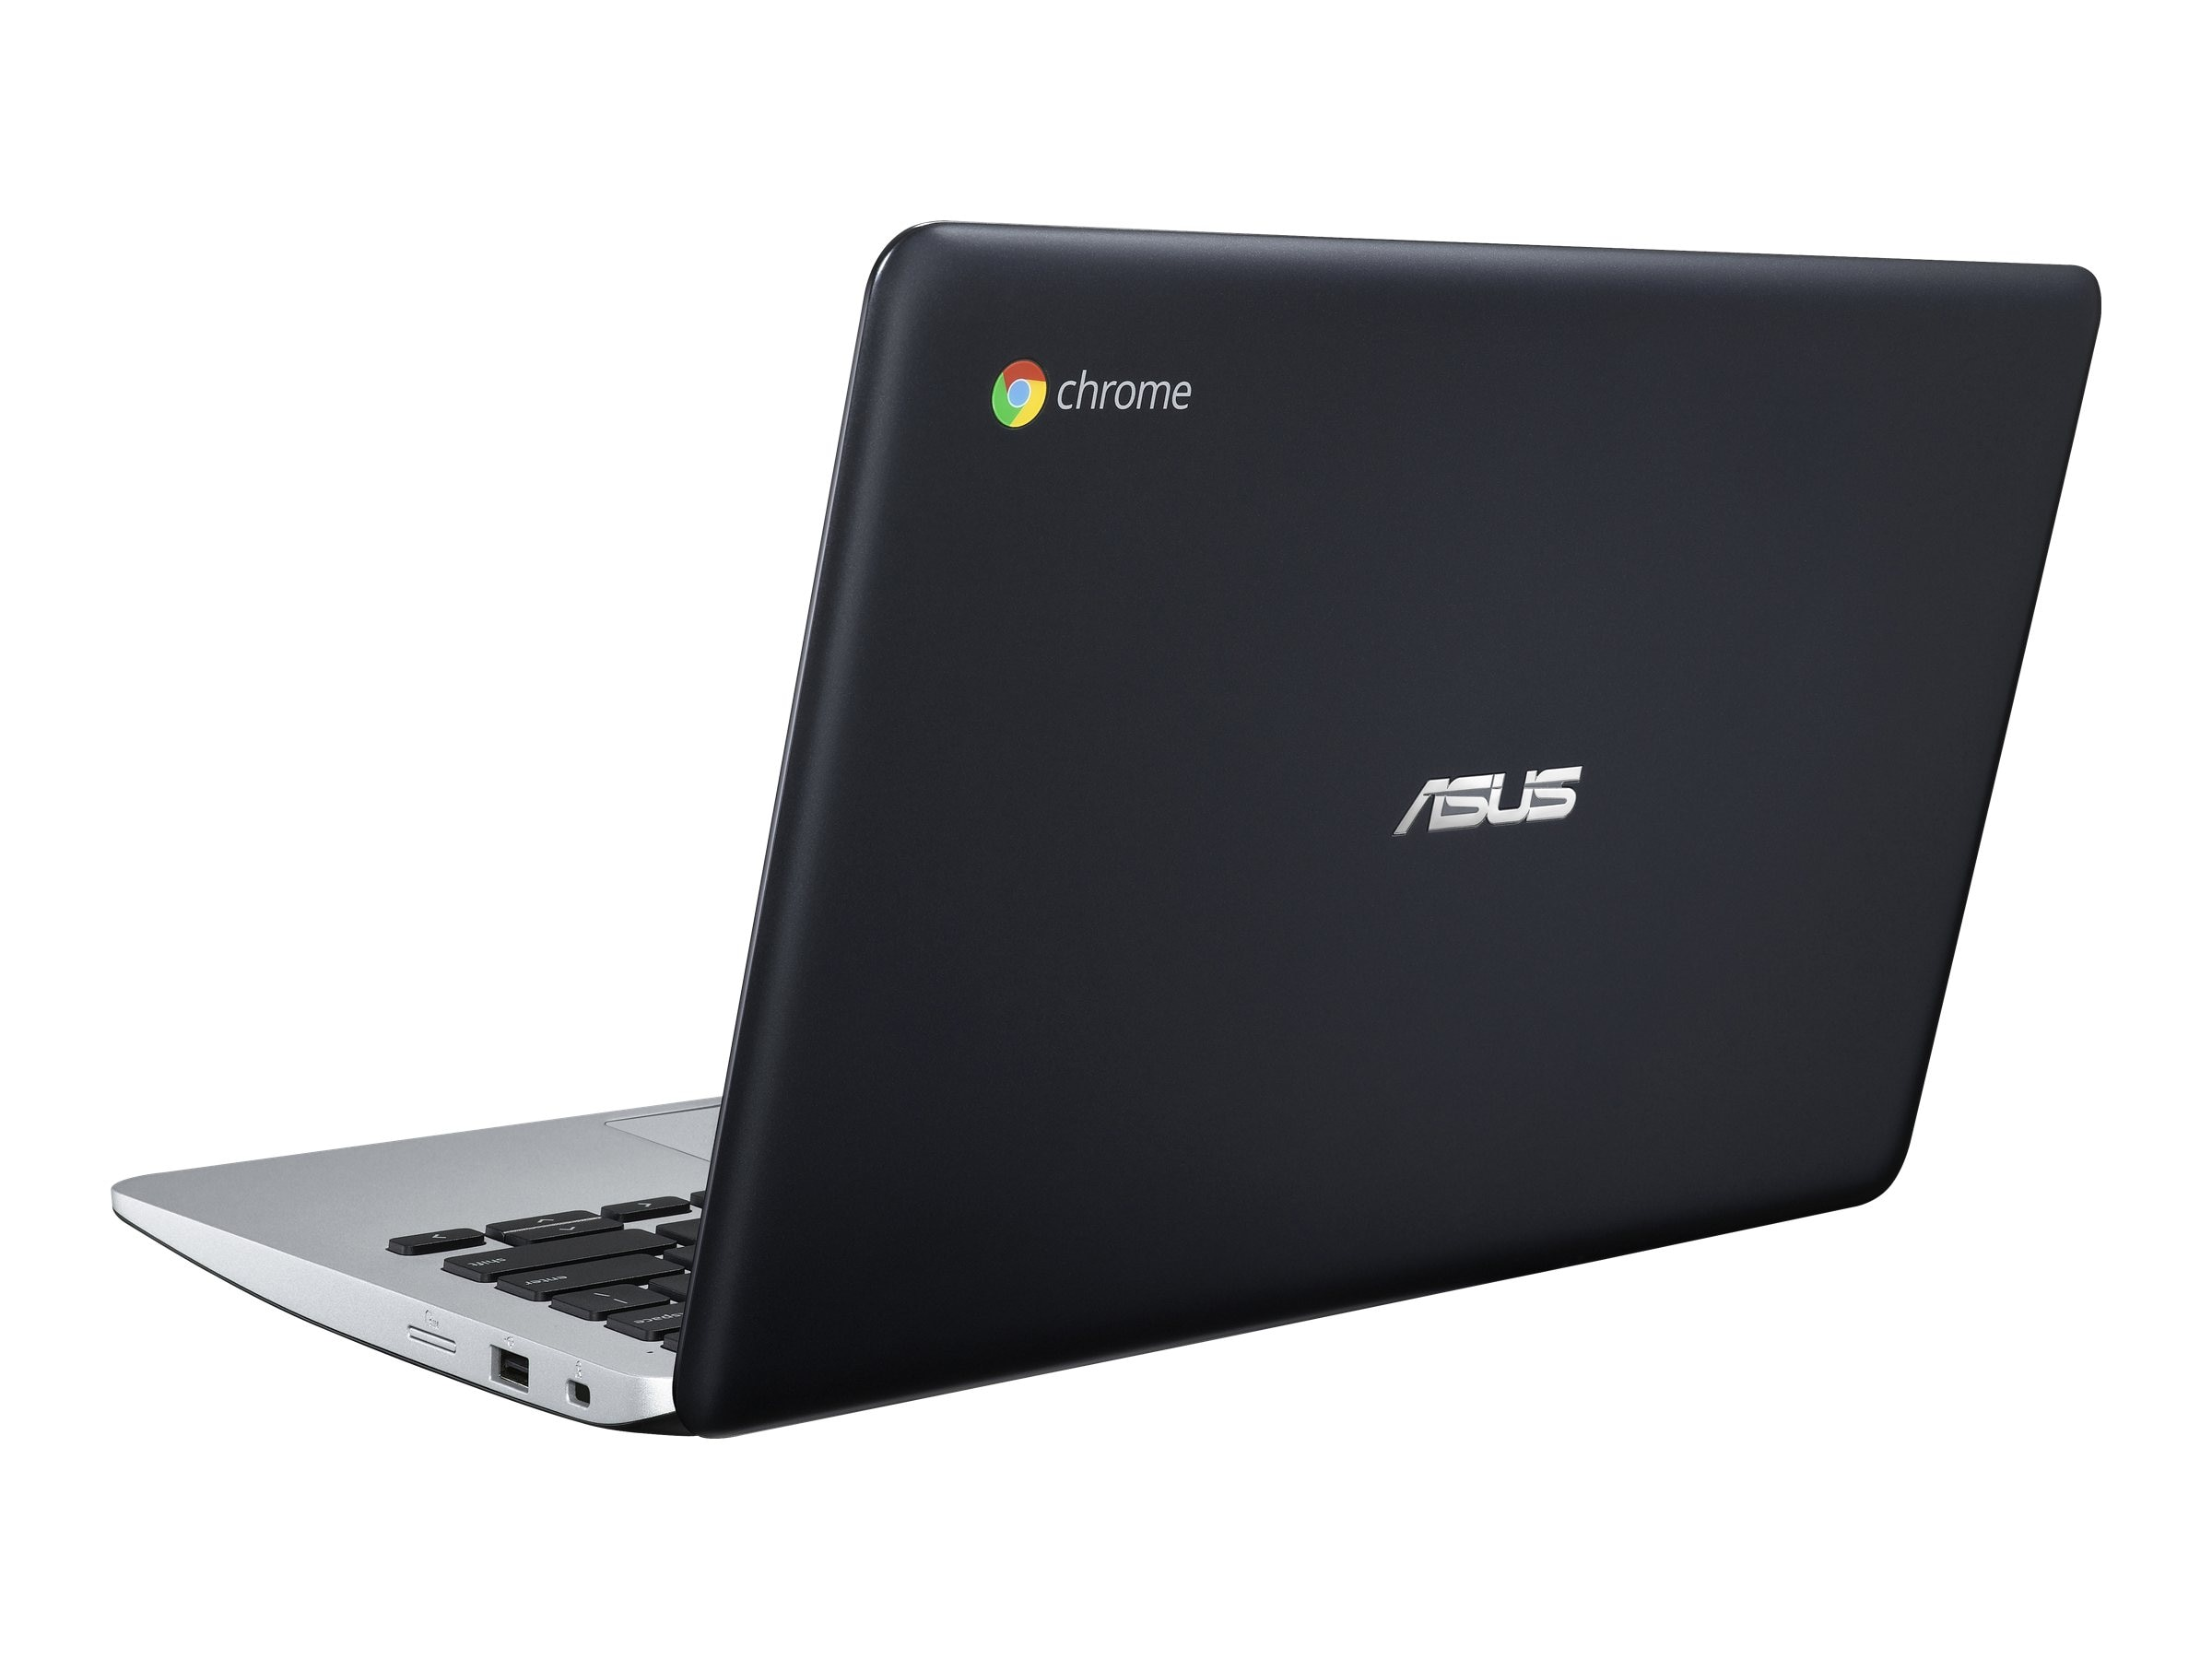 Asus C200MA-DS02 Image 6